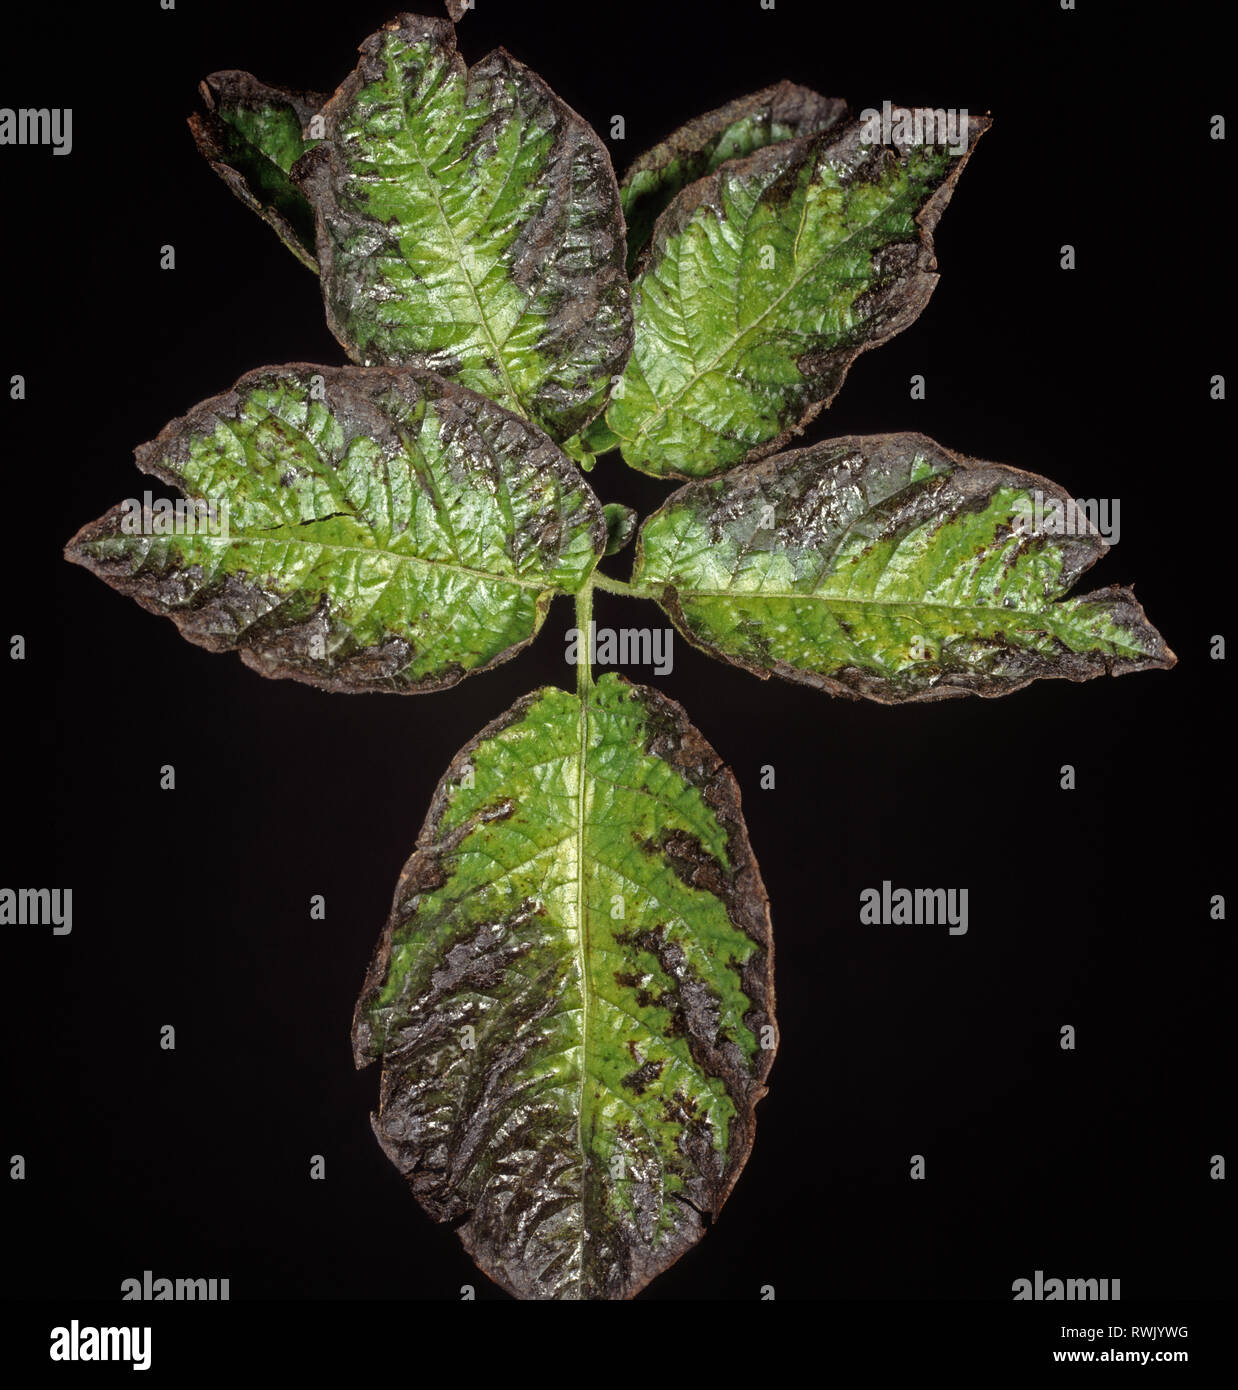 Marginal blackening caused by potassium deficiency to potato leaves - Stock Image